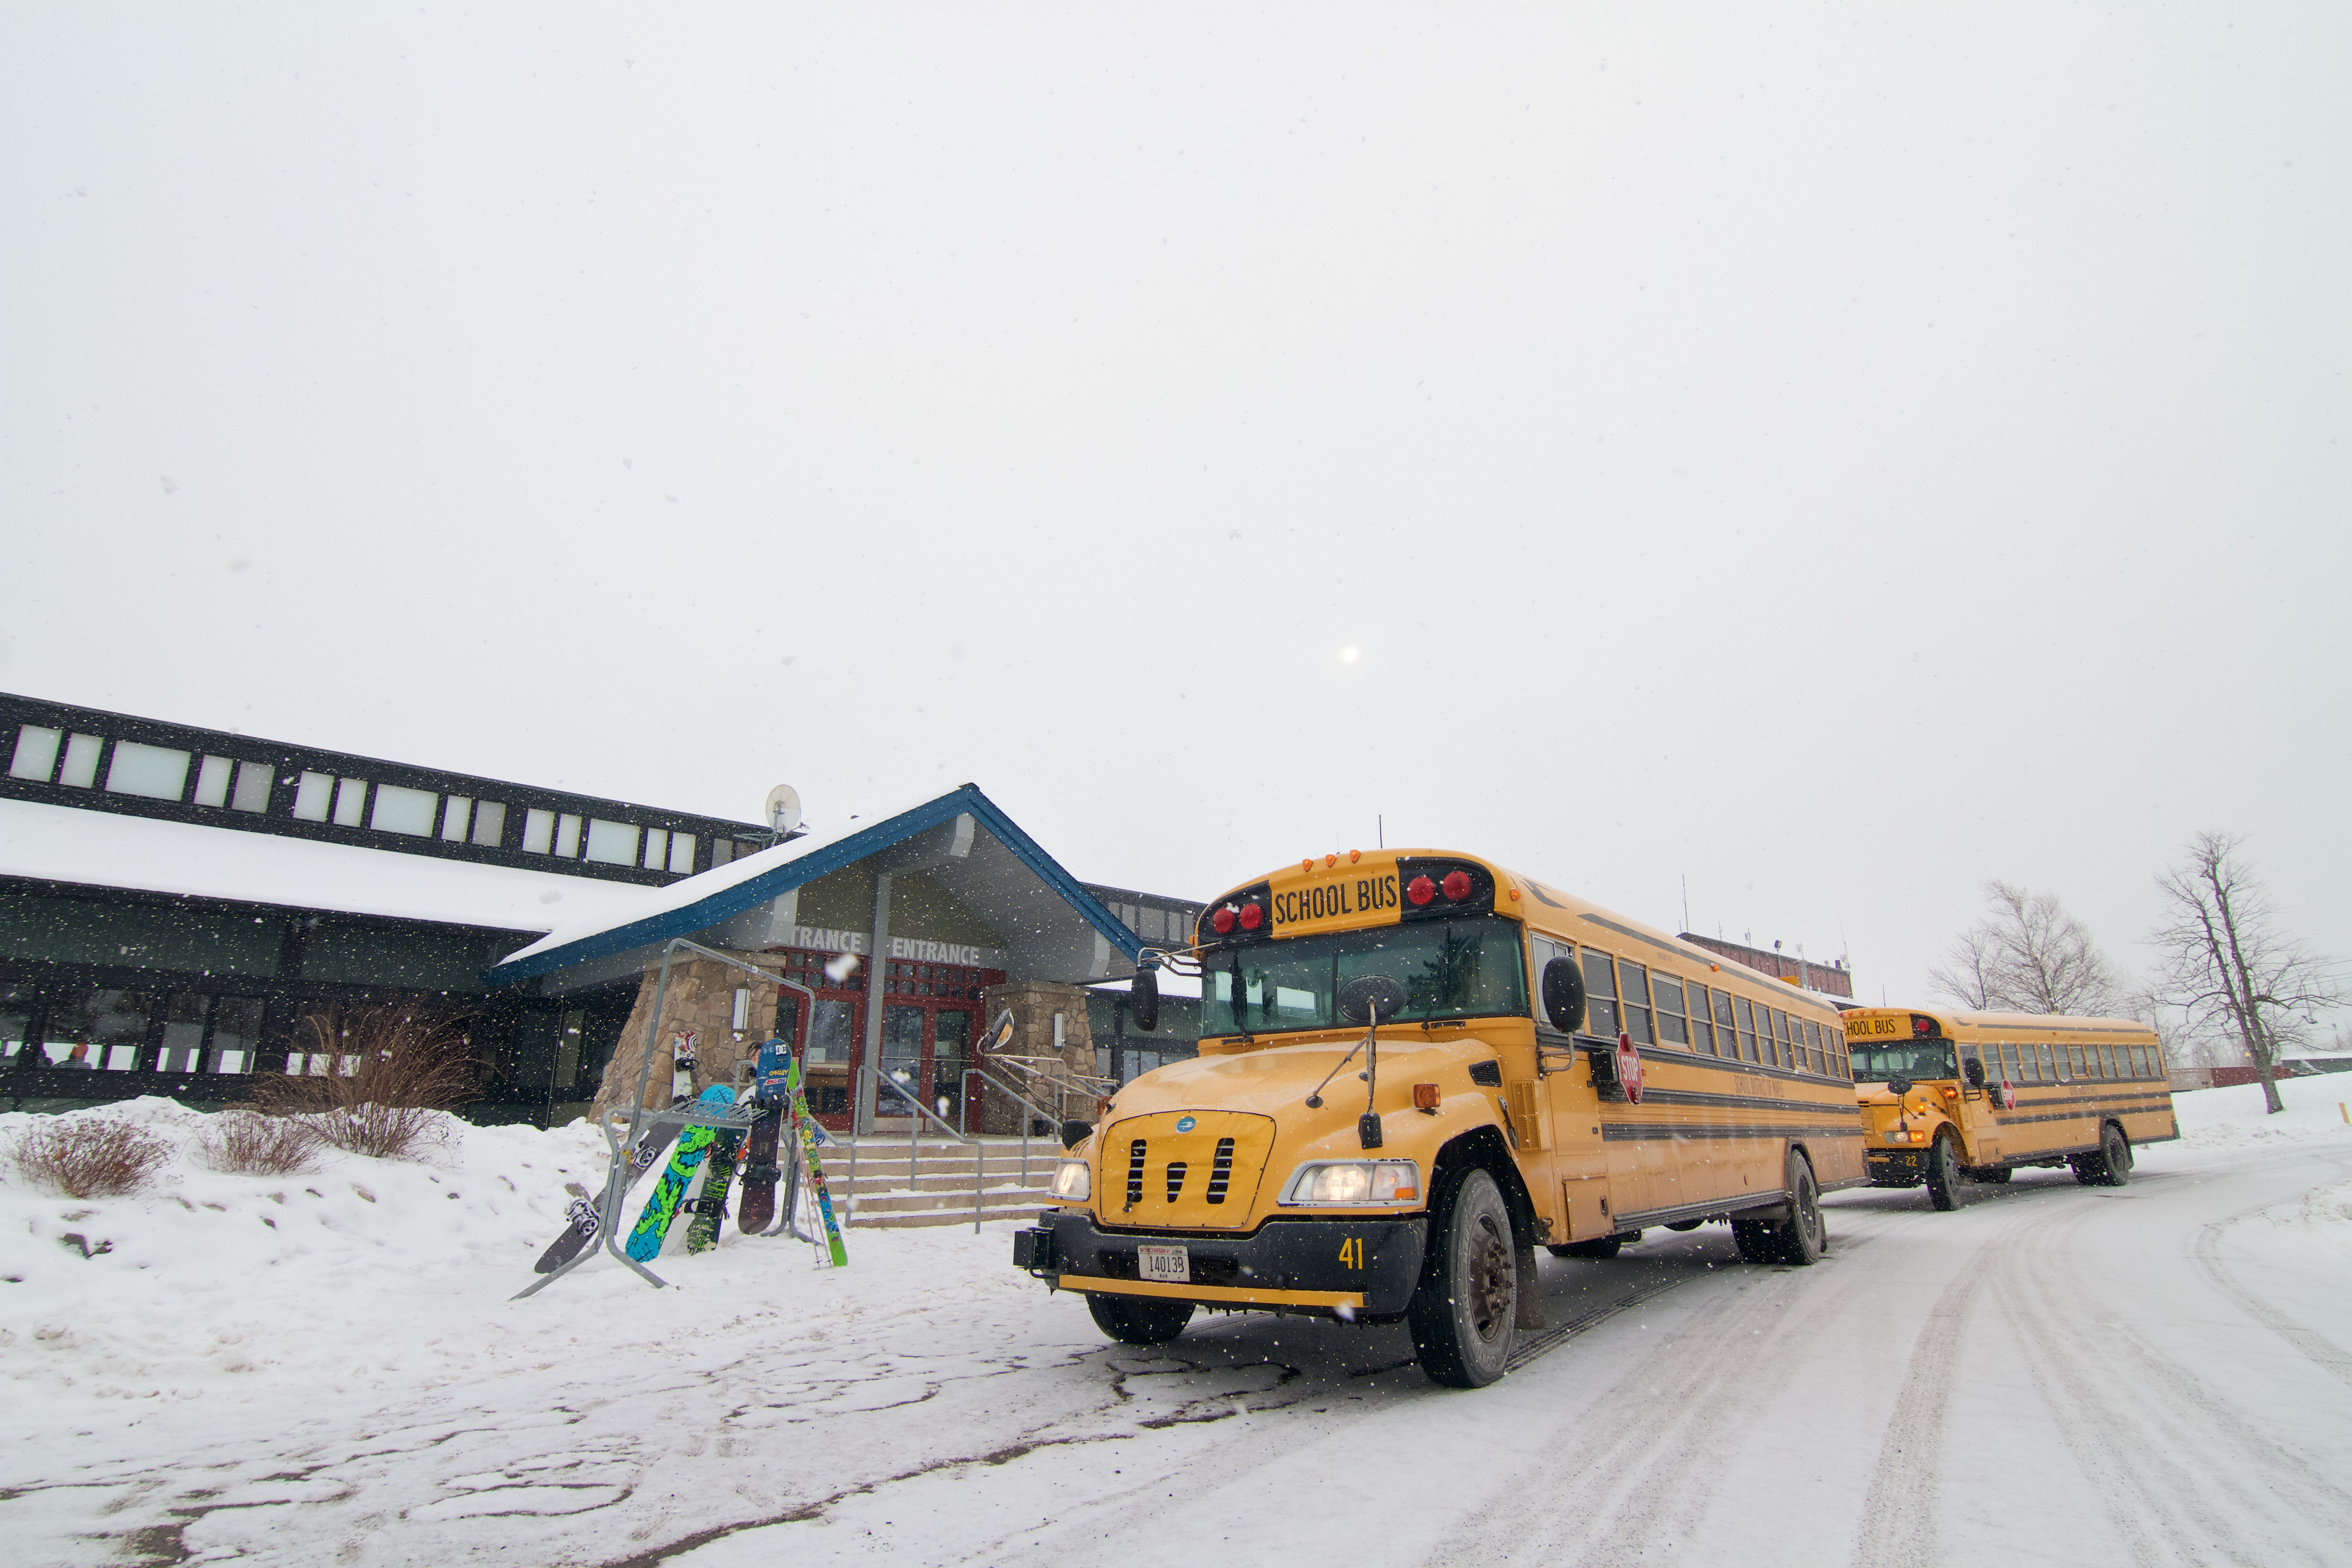 School Buses Parked Outside the main Chalet